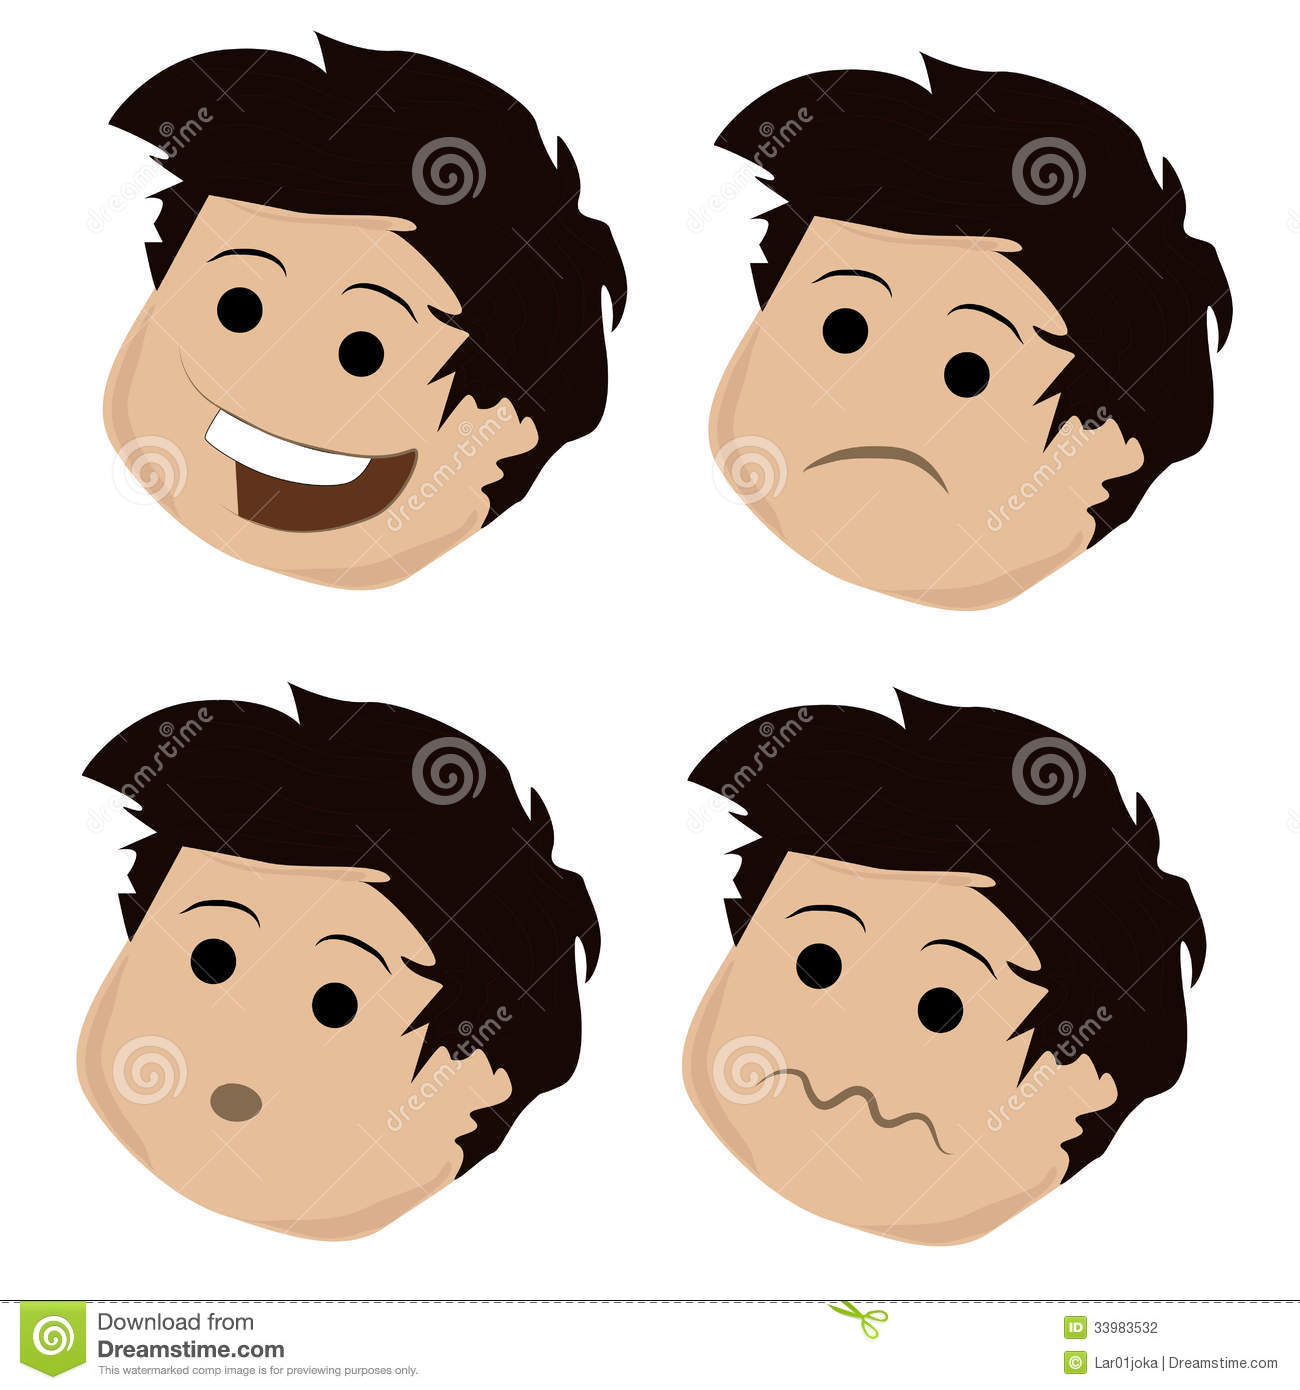 Four Facial Expressions Royalty Free Stock Image.